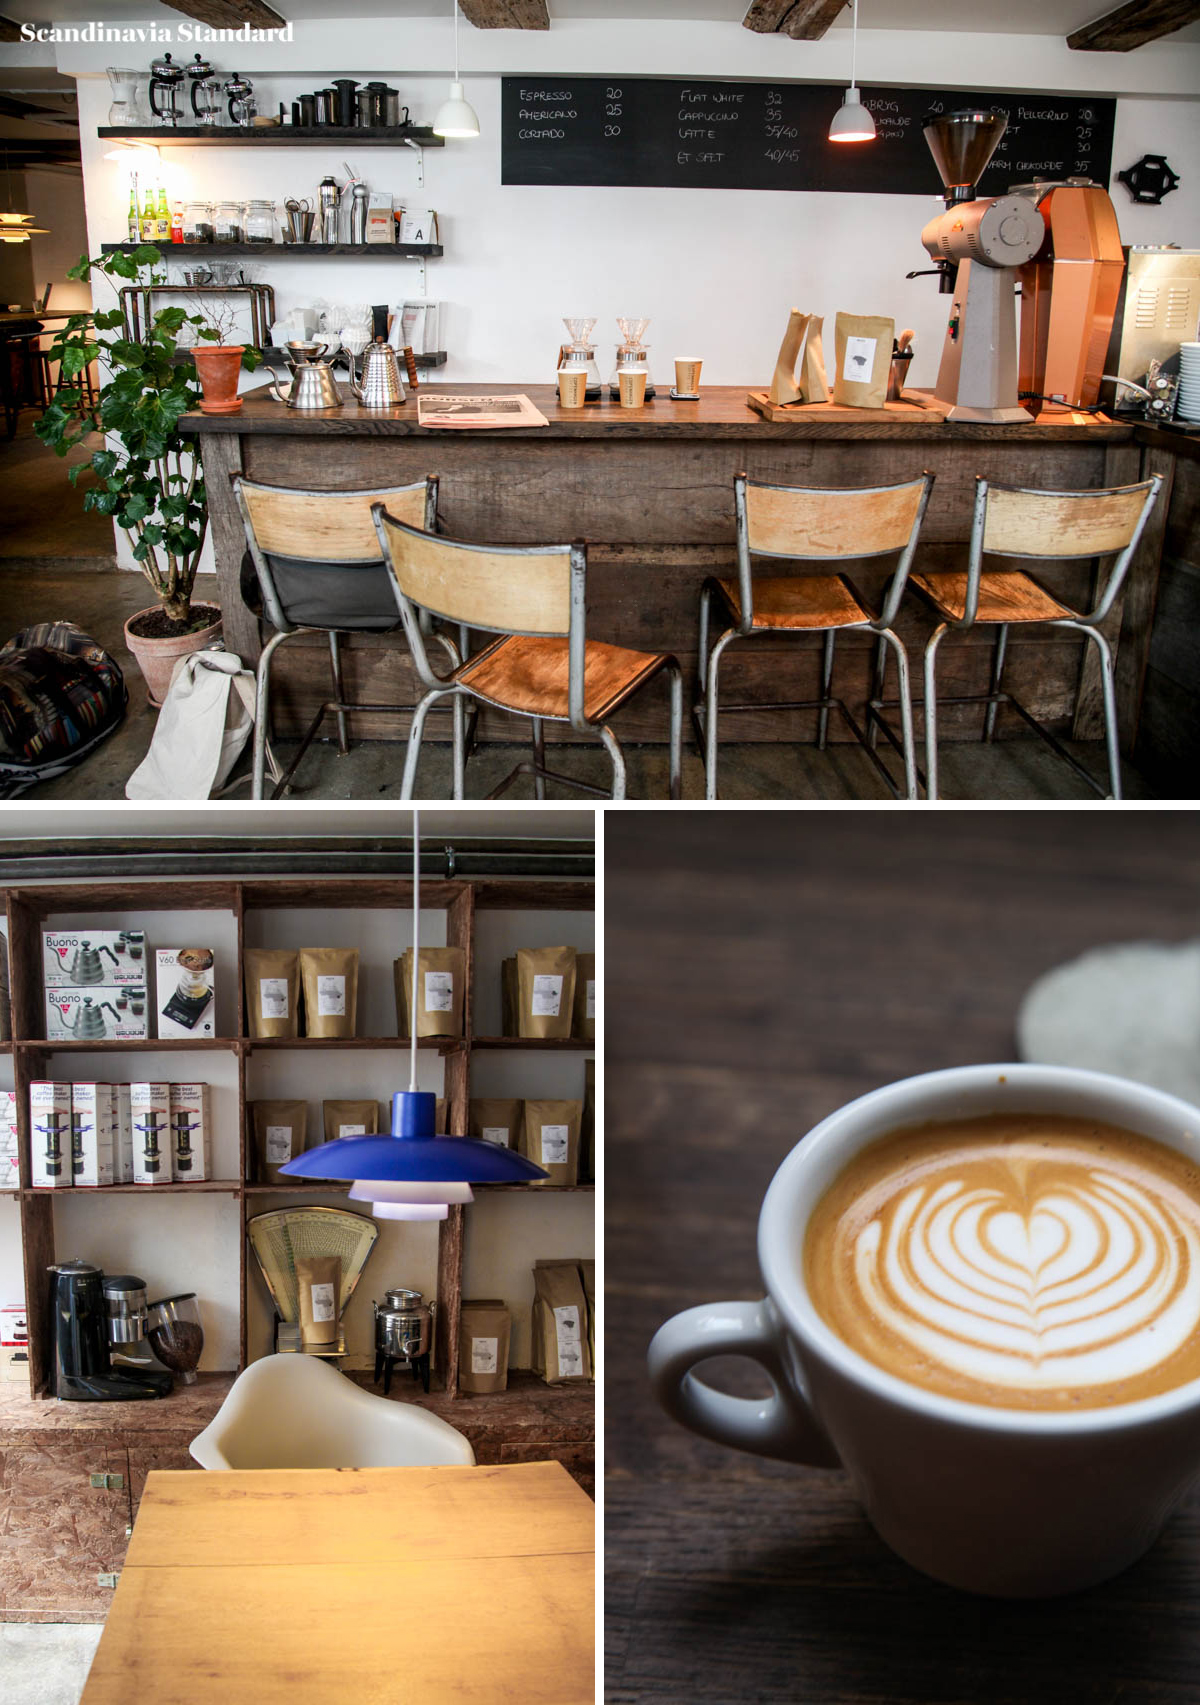 Best Coffee Shops - Copenahgen Coffee Lab Collage | Scandinavia Standard